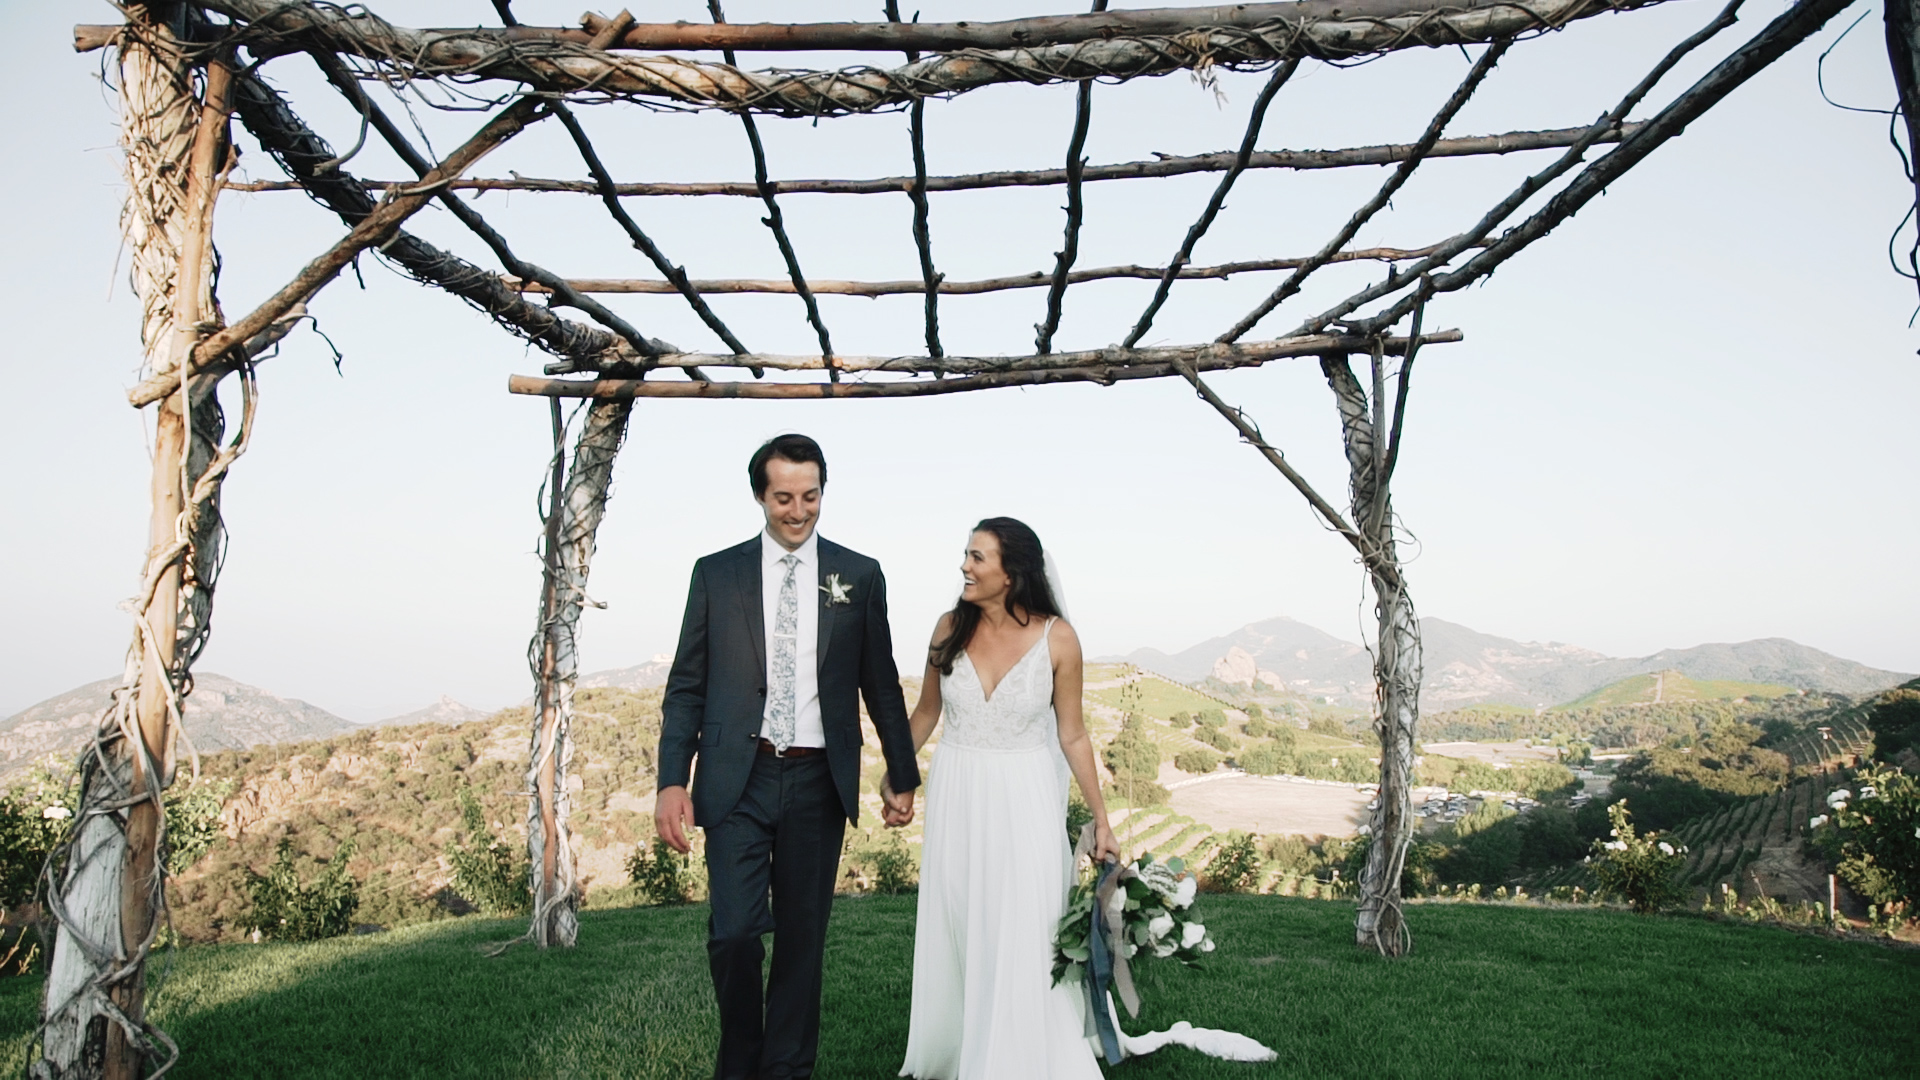 Micah + Elizabeth | Malibu, California | Saddlerock Ranch